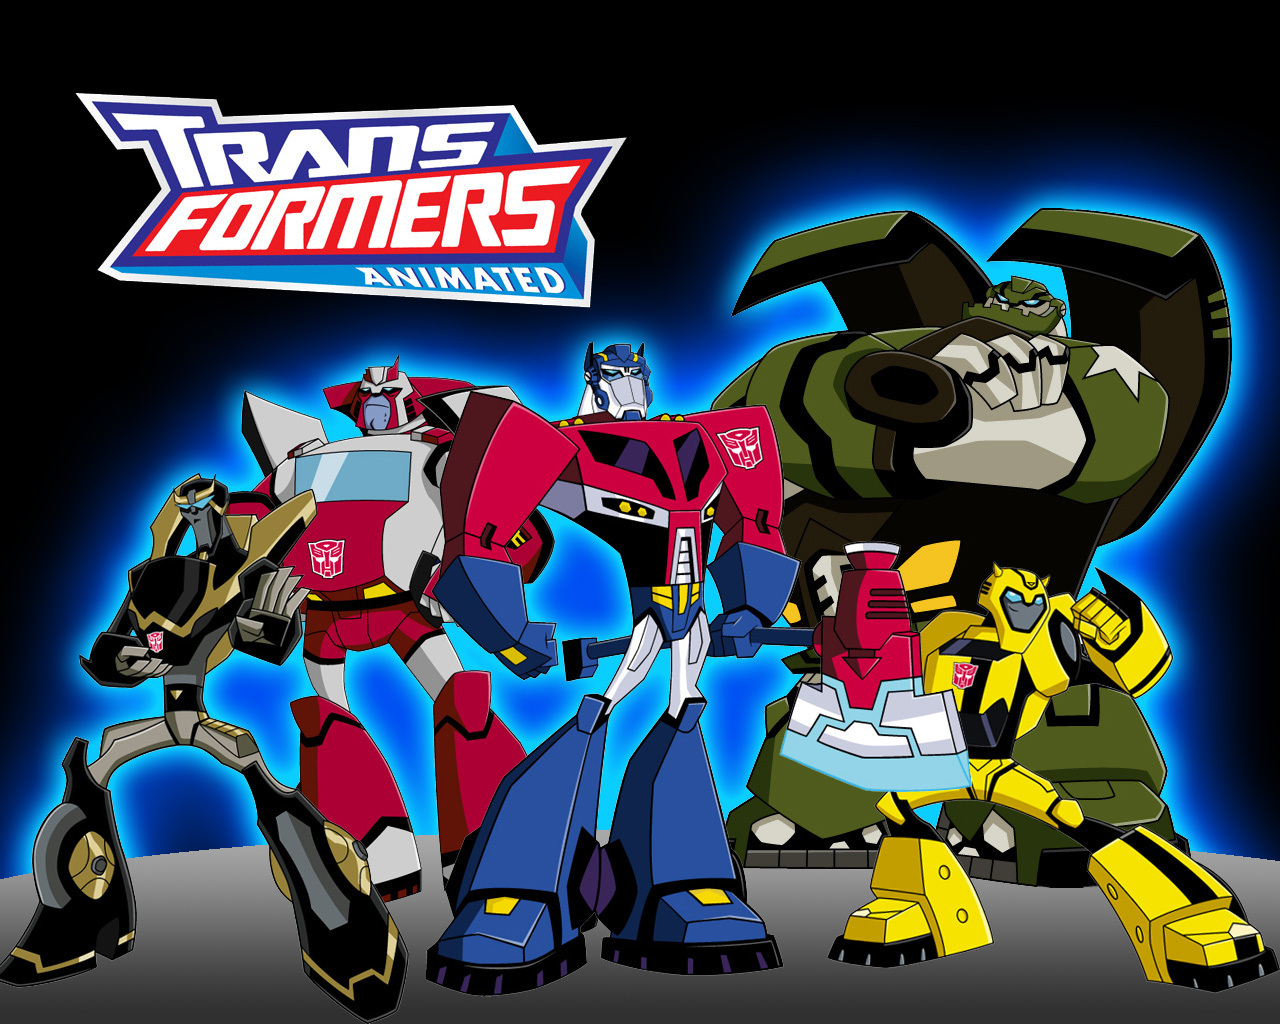 Transformers Animated Series Transformers animated wallpapaer 1280x1024